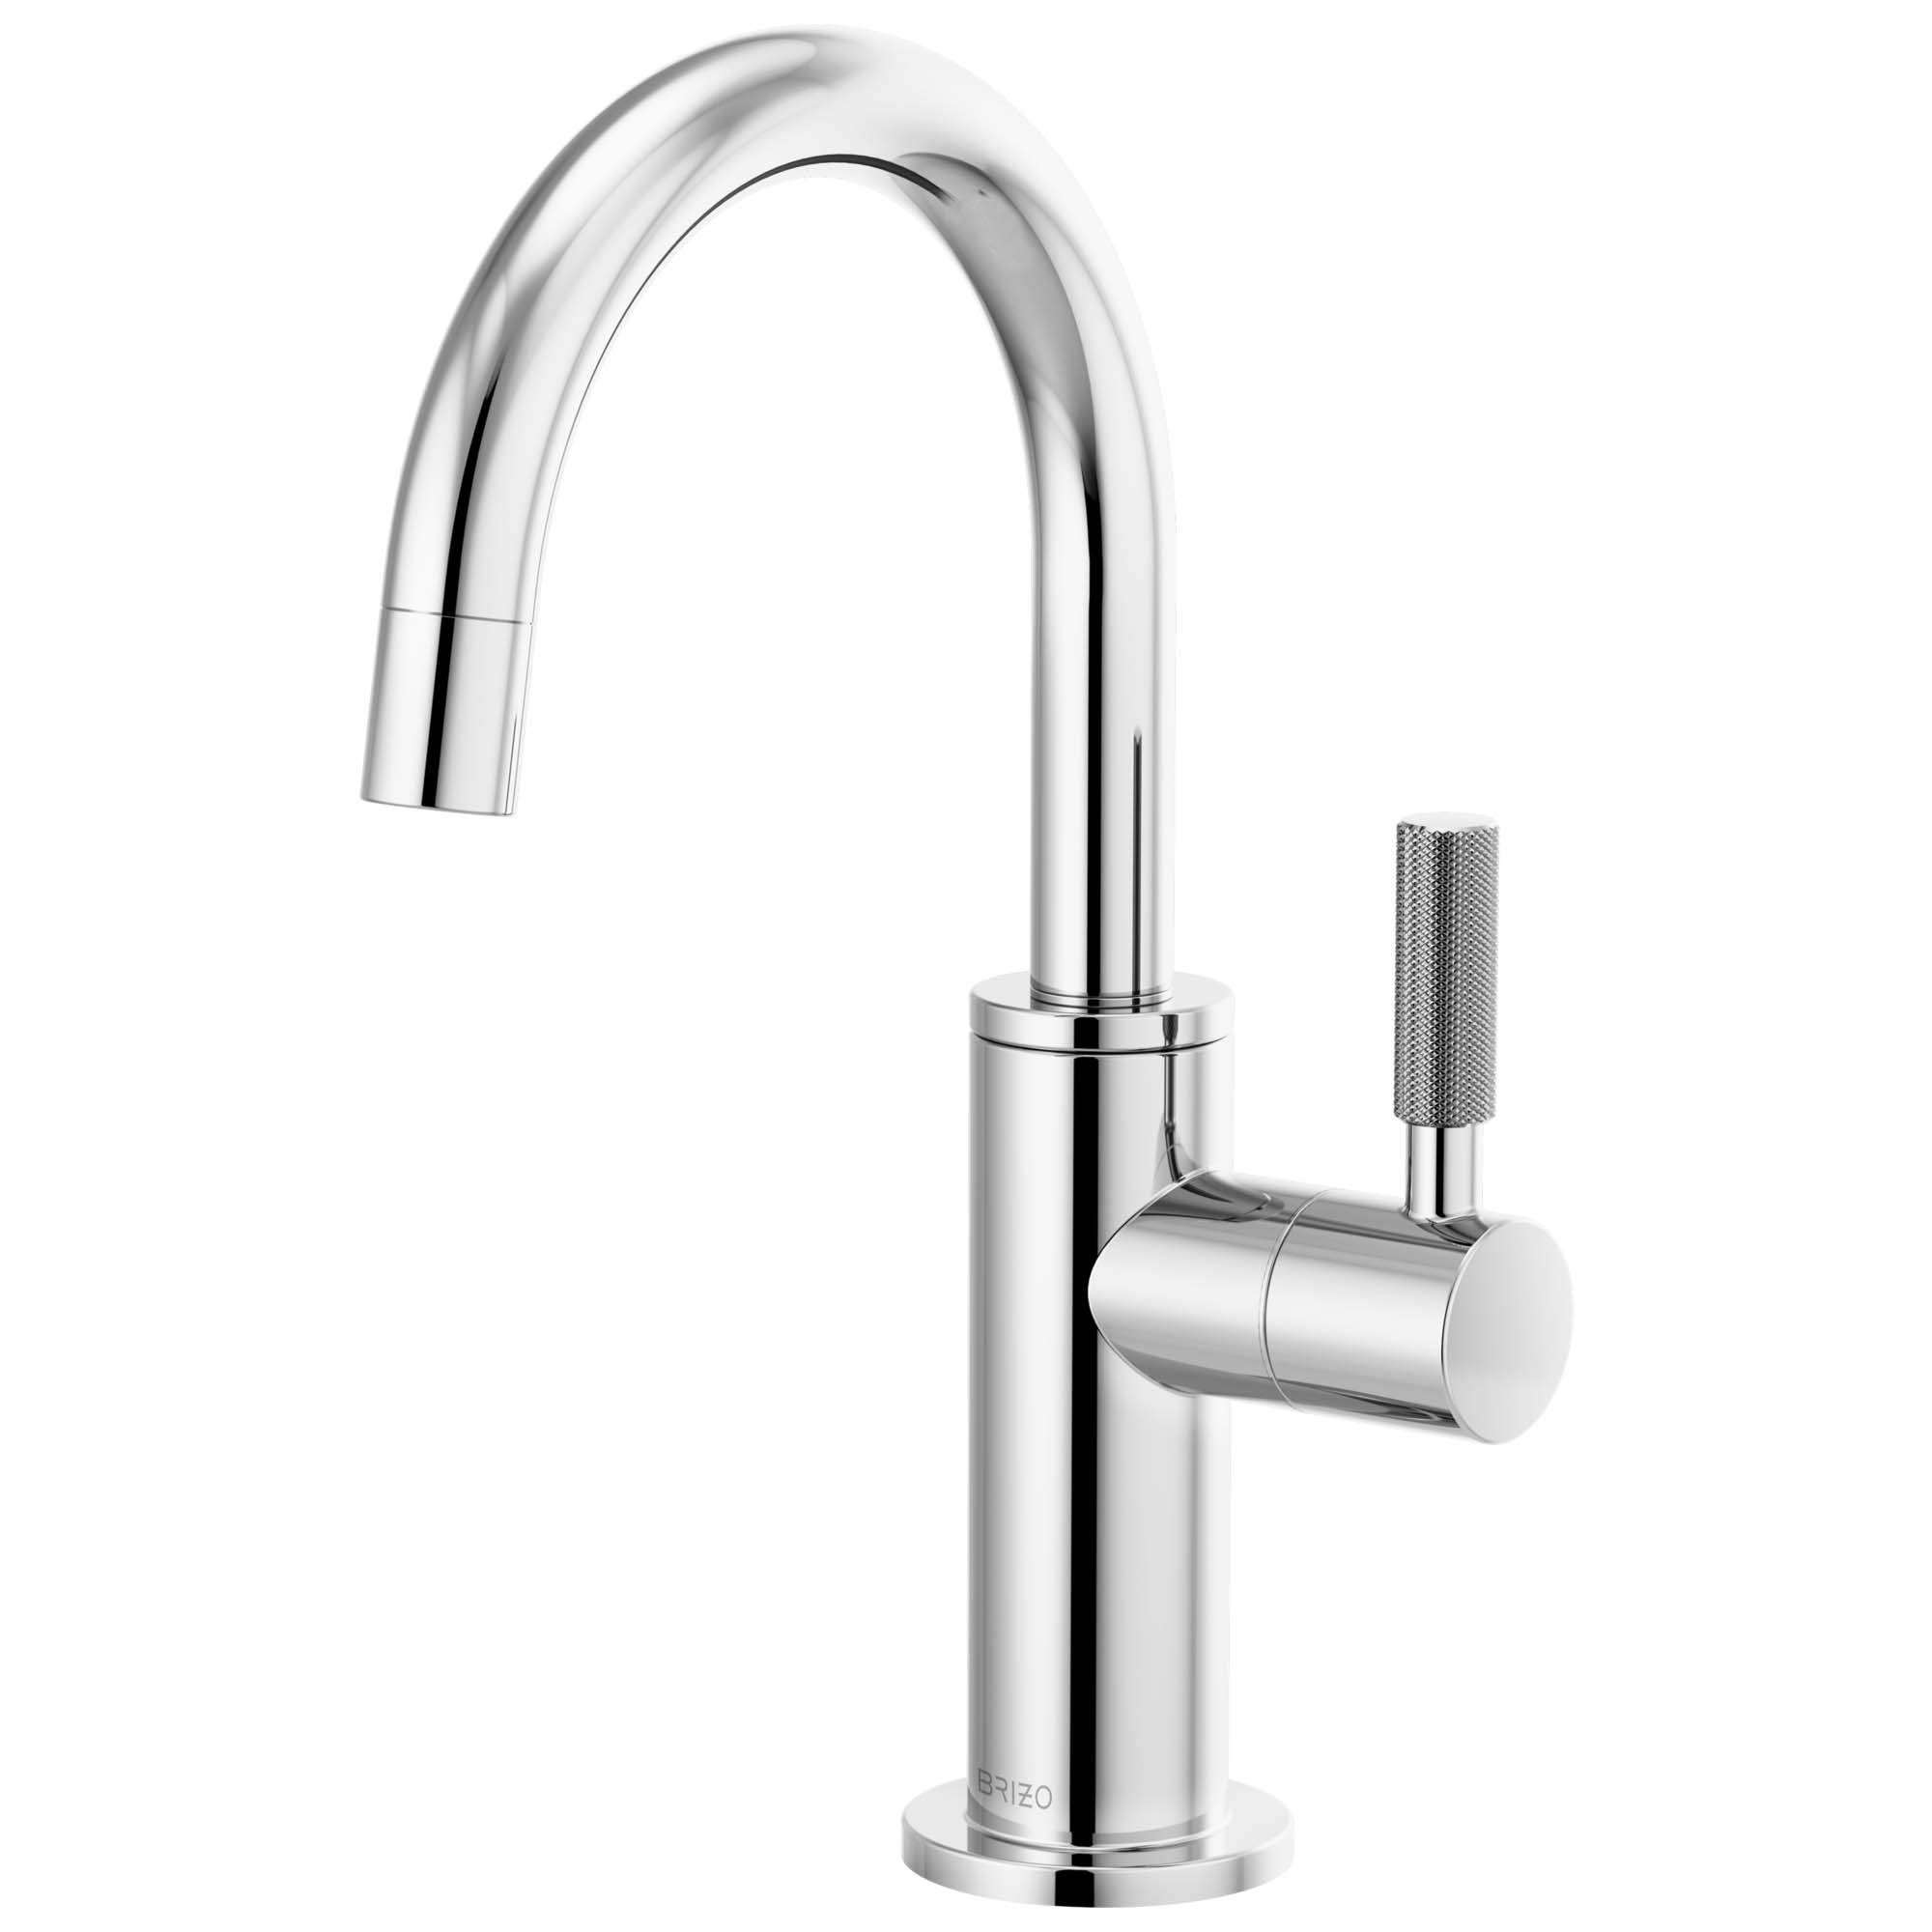 Brizo 61343LF-C-PC Litze Beverage Faucet with Arc Spout and Knurled Handle - Chrome